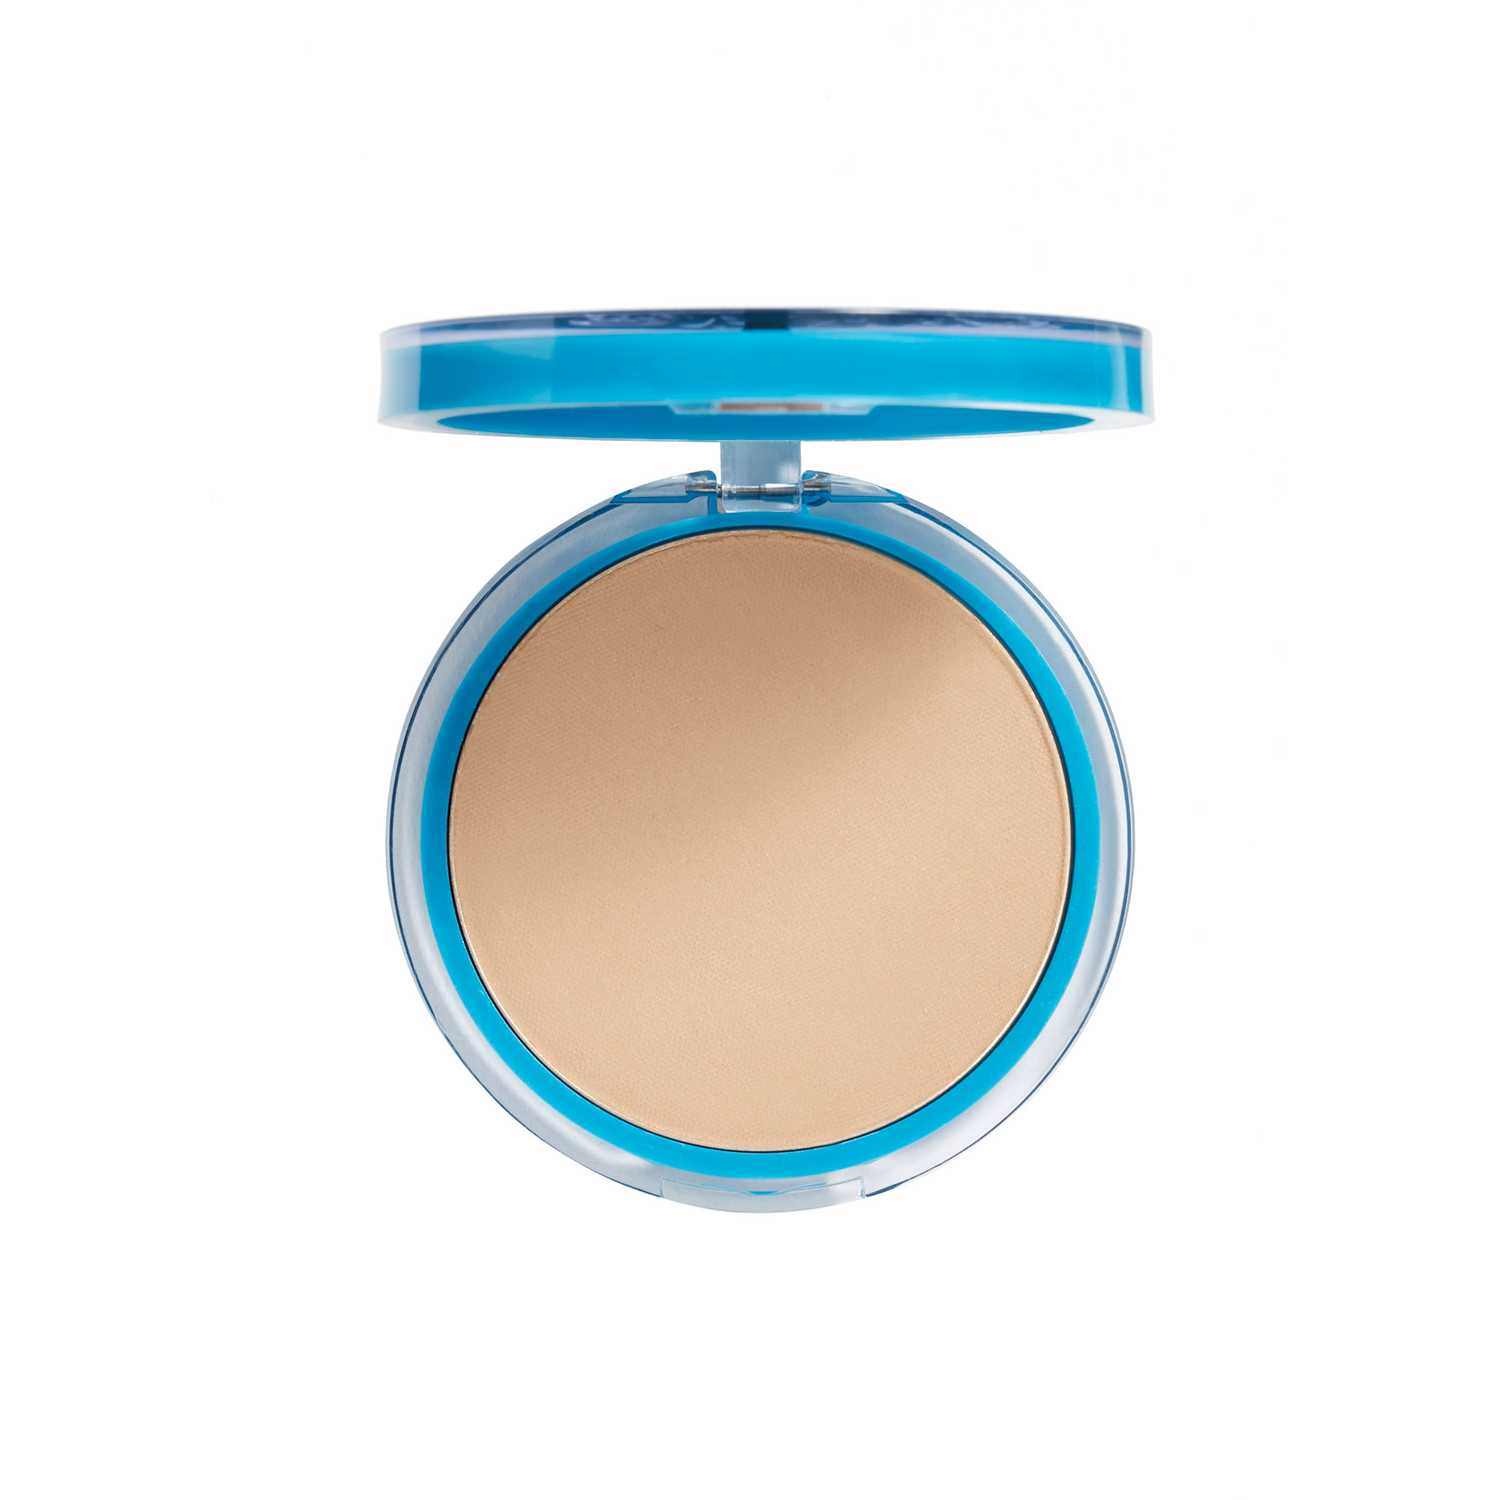 Covergirl Polvos Clean Matte Buff Beige 525 Correctores